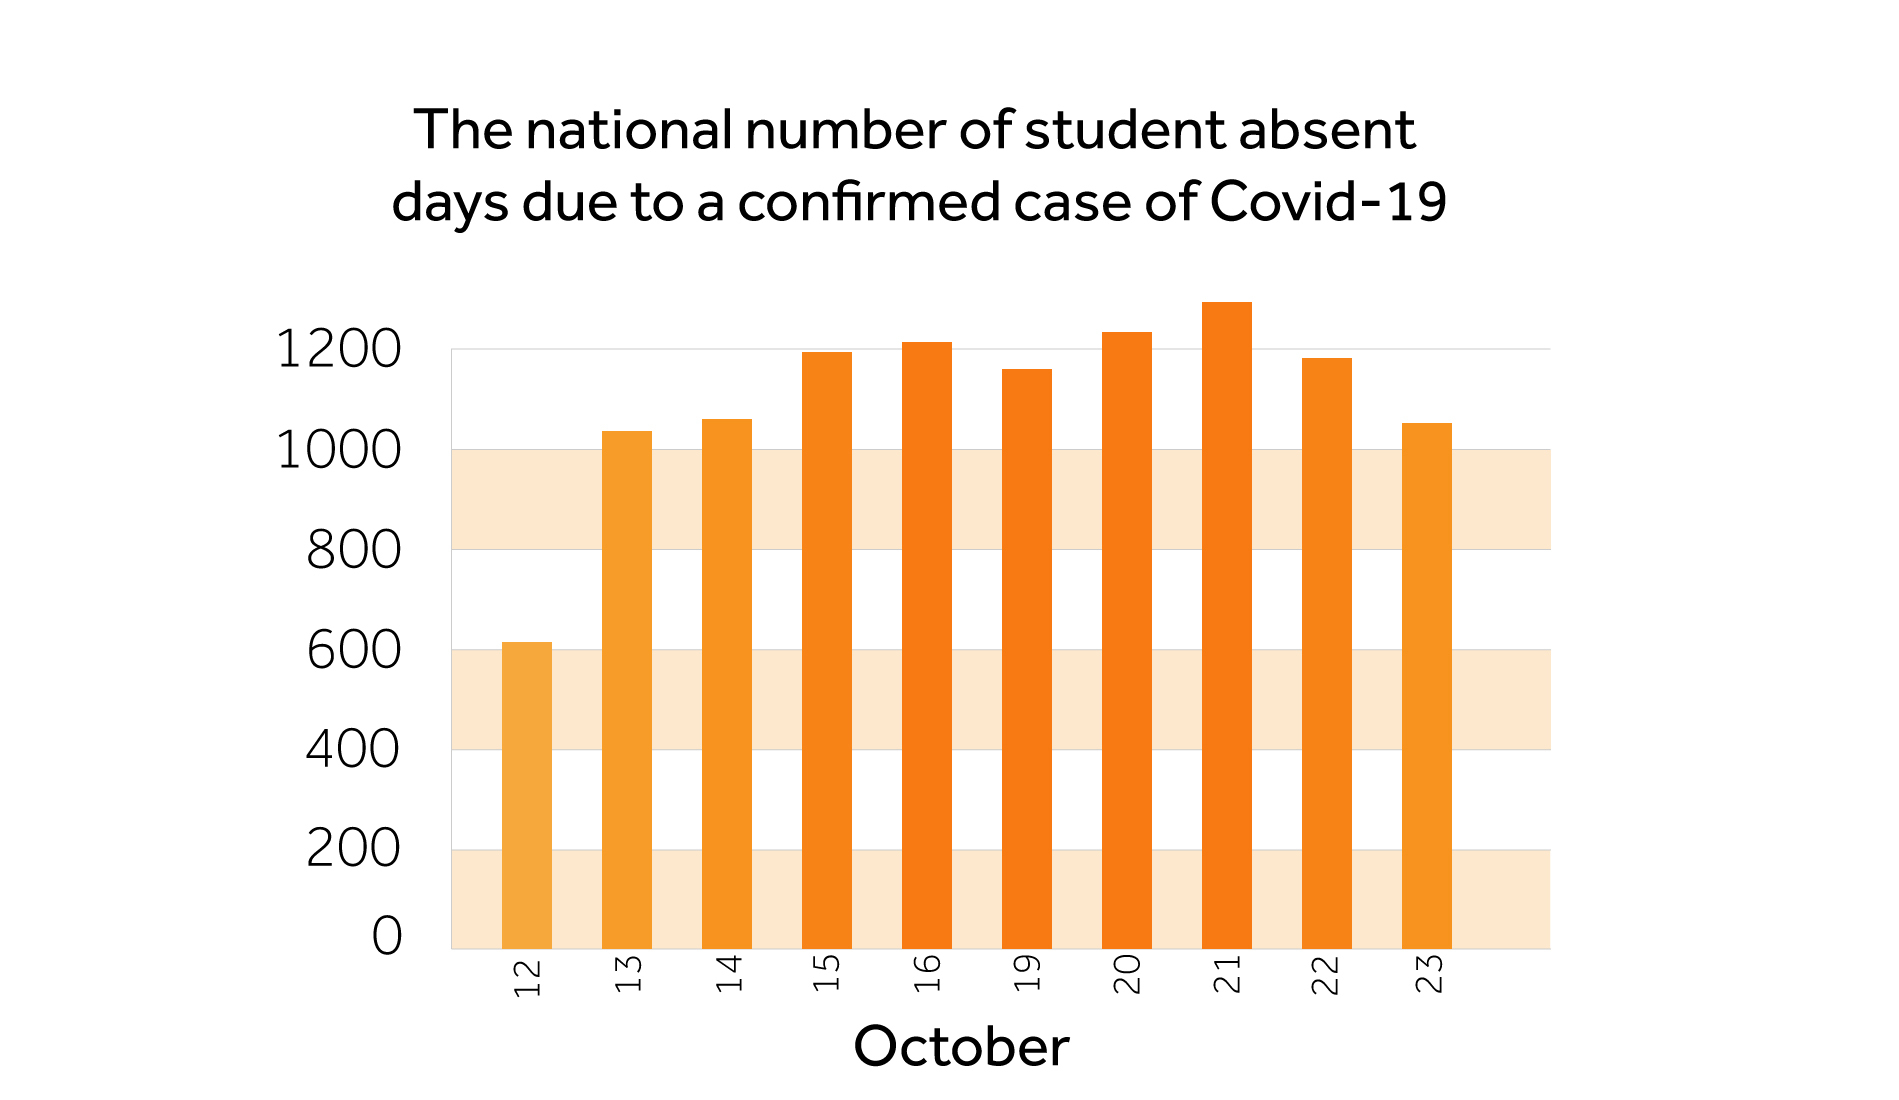 Covid absences in colleges